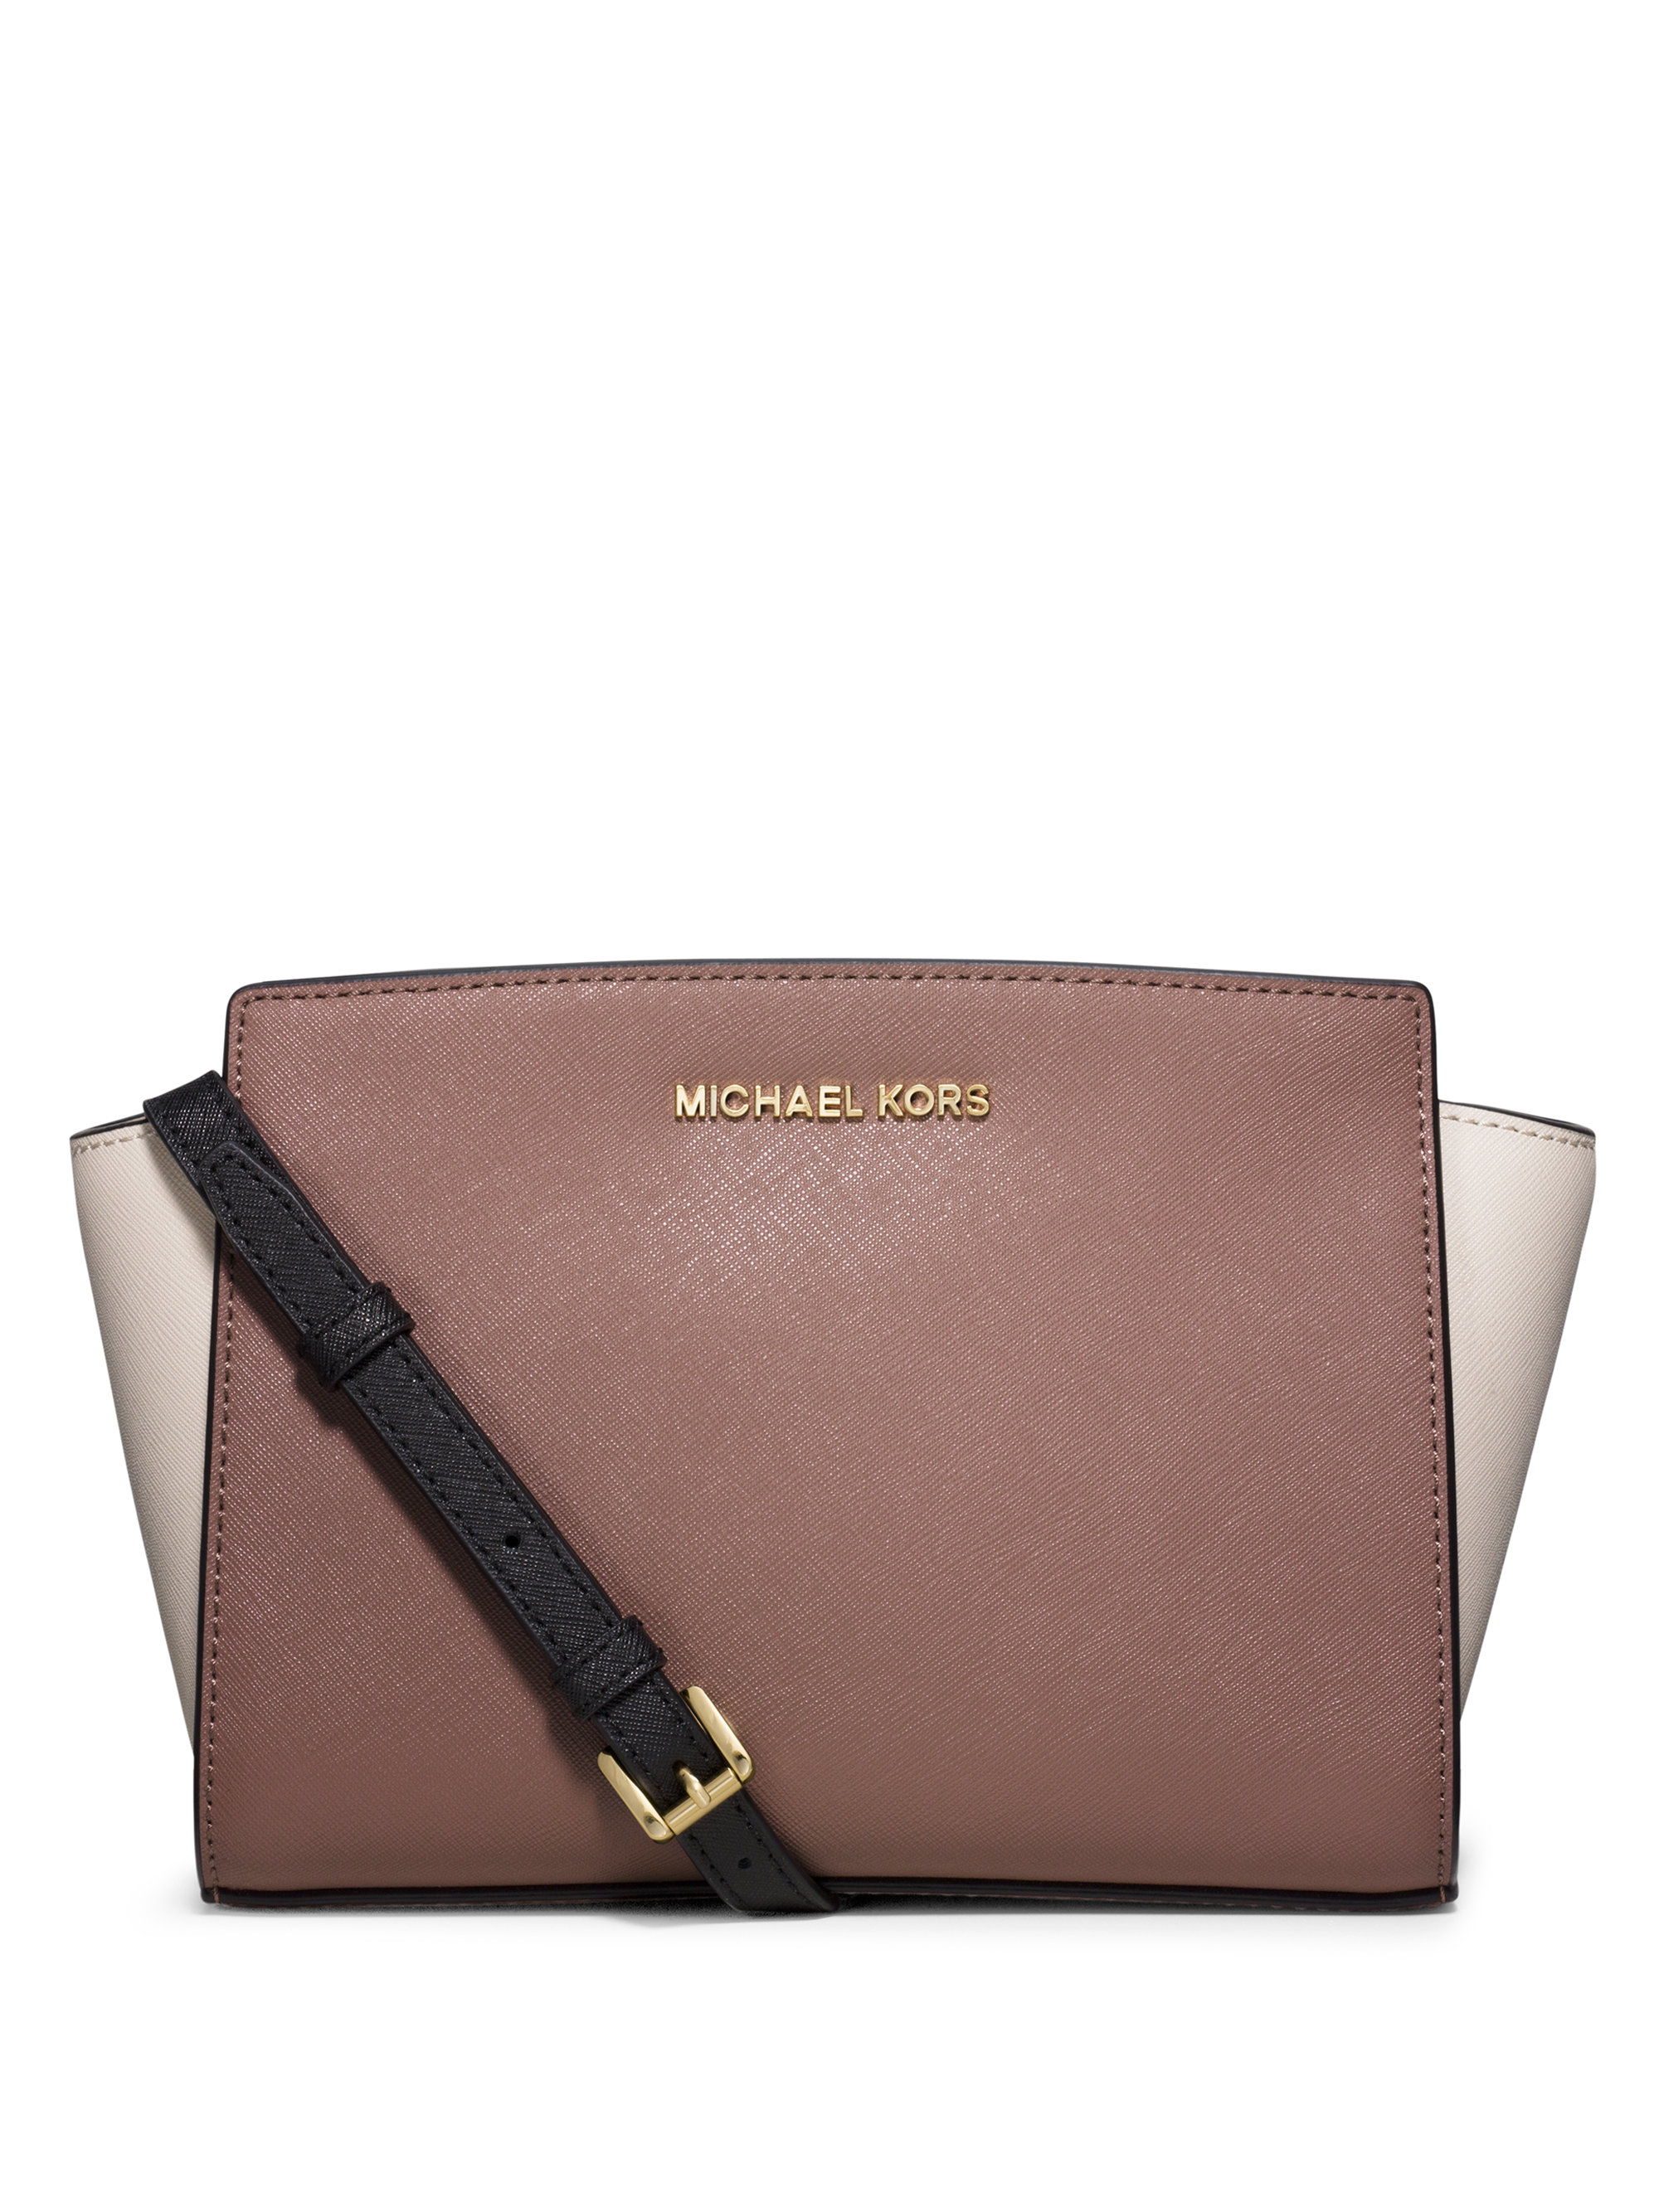 Selma Medium Messenger with Ruffles Bag in Black Saffia Leather Michael Michael Kors